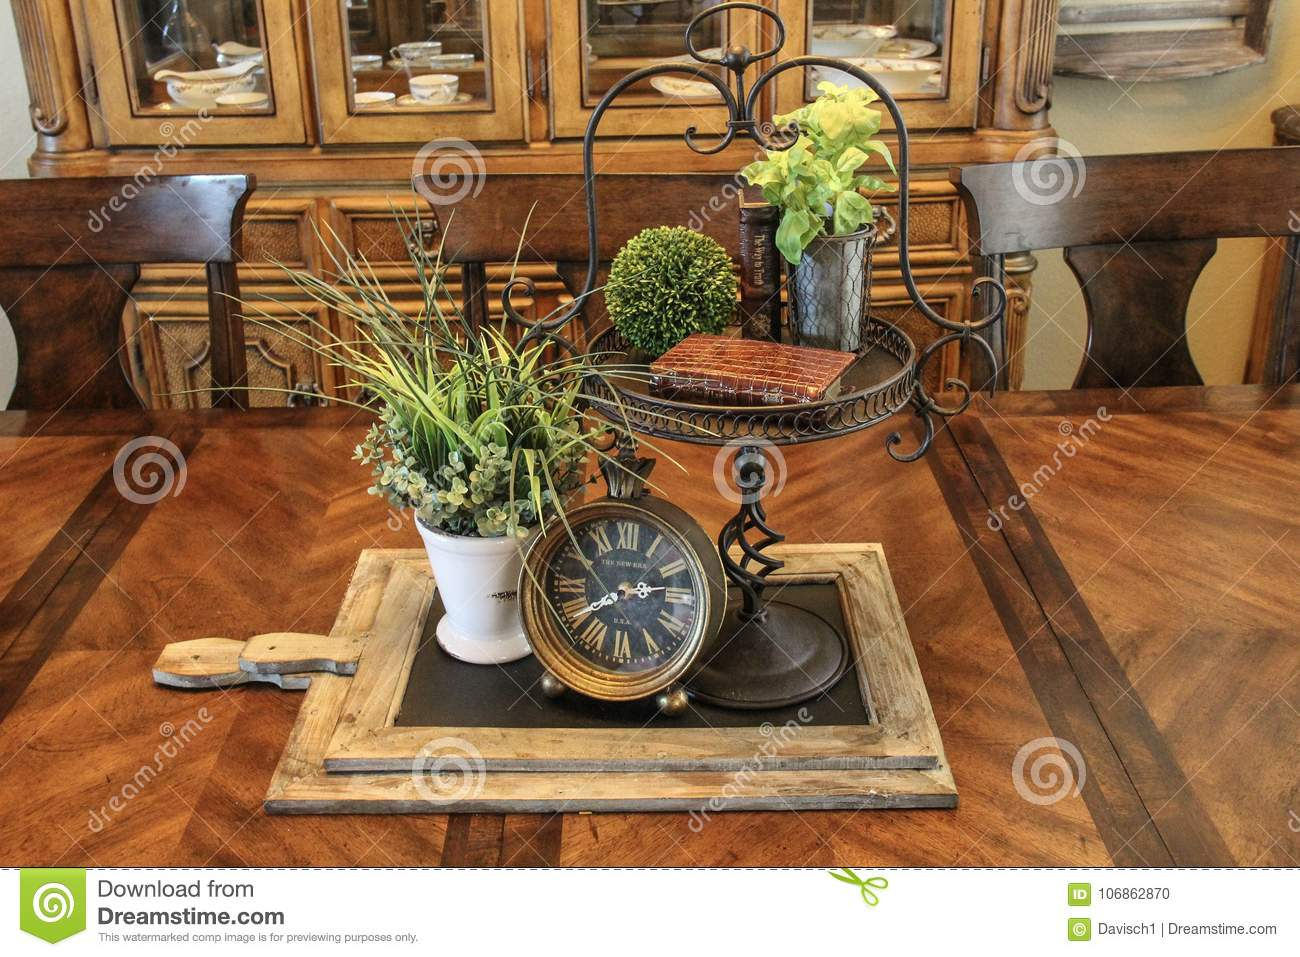 Surprising Unique Table Centerpiece With Clock Editorial Image Image Interior Design Ideas Gentotryabchikinfo